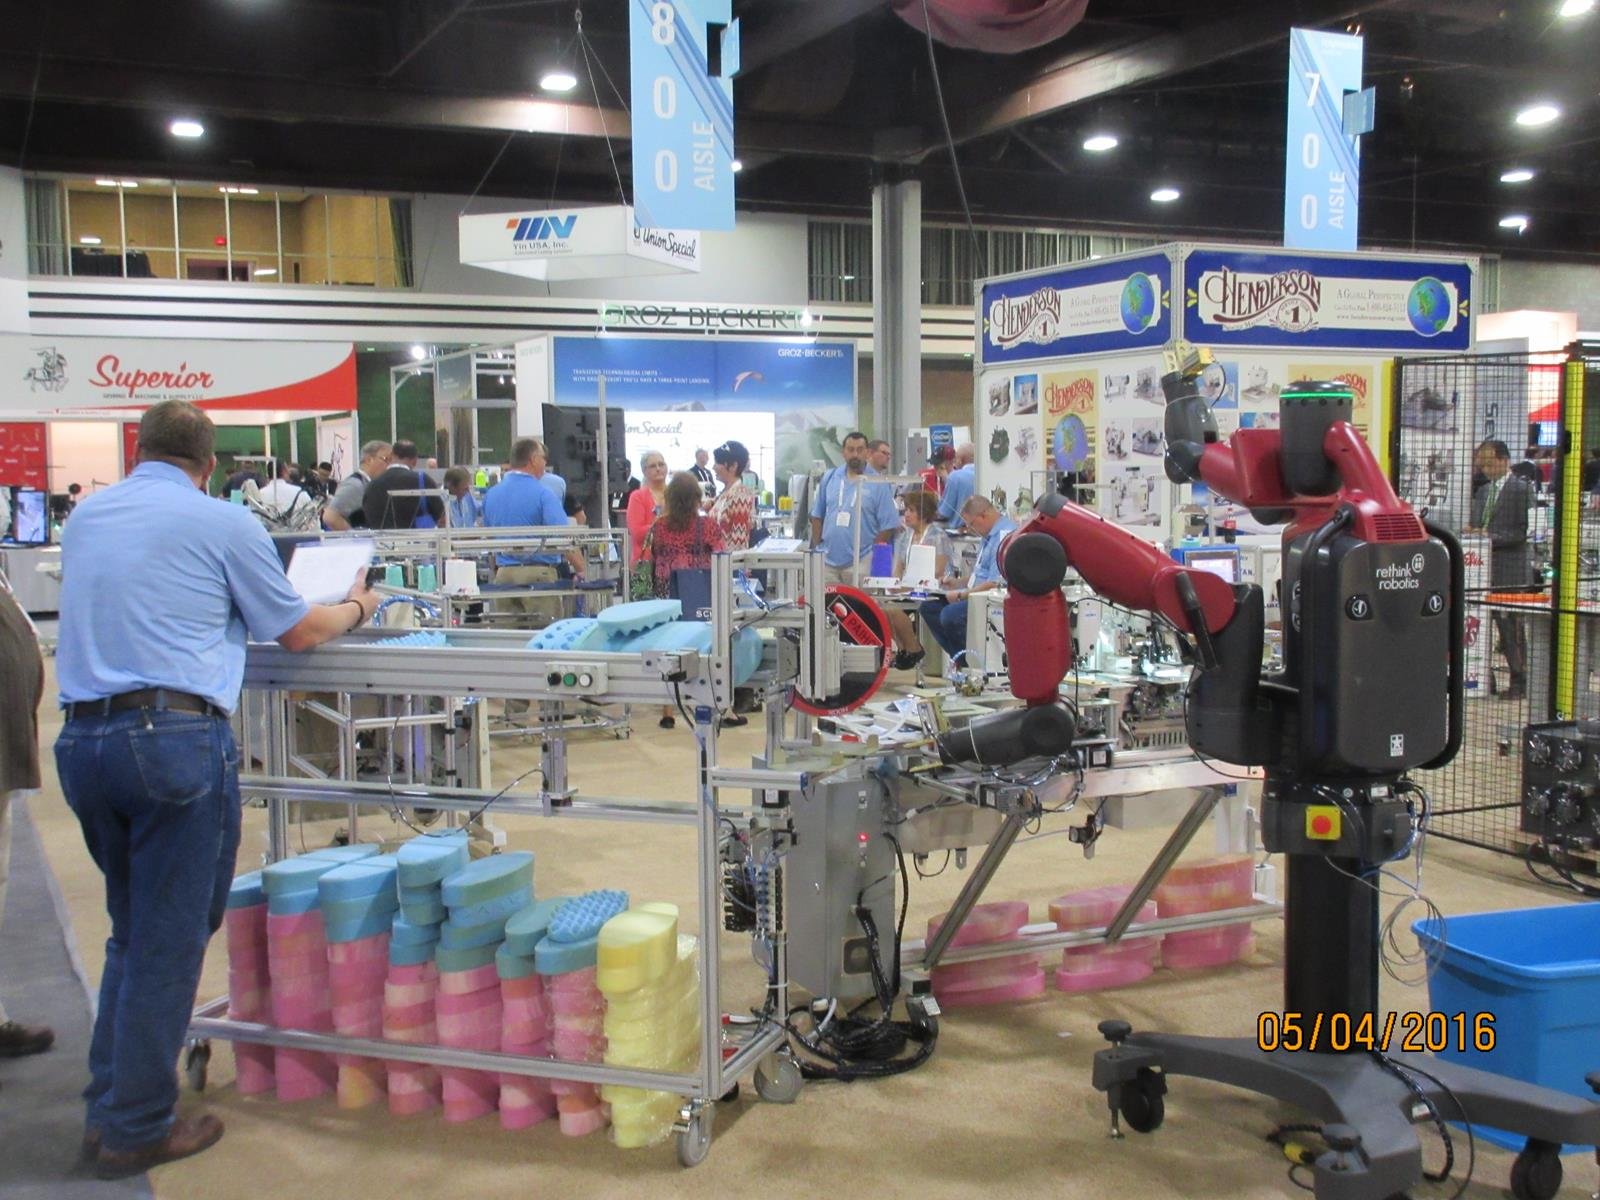 Texprocess had a few extra-large machinery exhibits, including sewing machines, robots, fabric cutting and handling equipment and the like. © Bill Smith